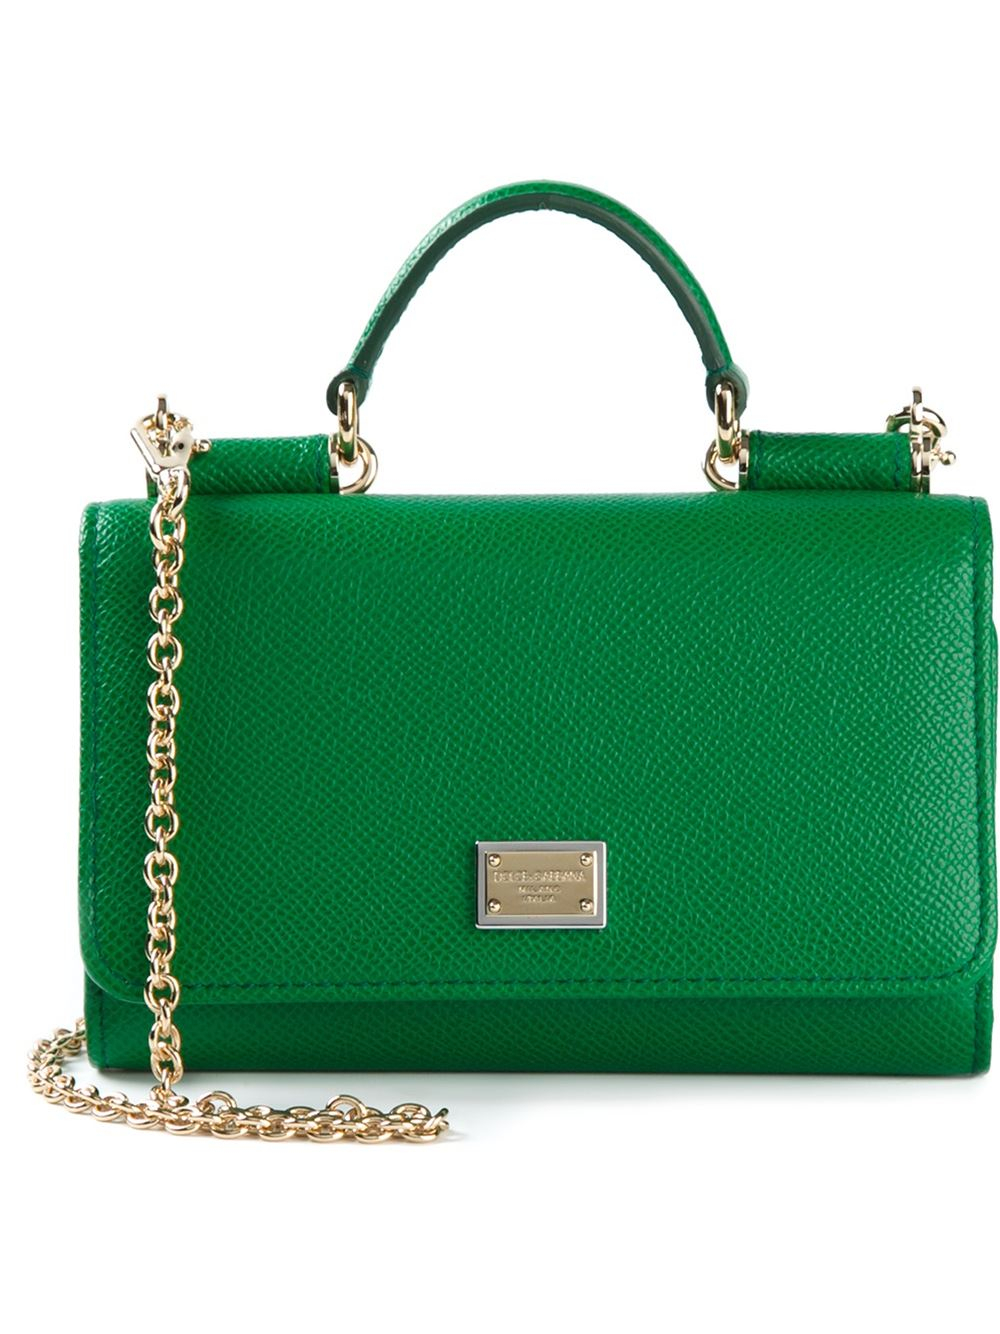 Dolce Gabbana Green Leather Handbag - Handbag Photos Eleventyone.Org dc8d194f68